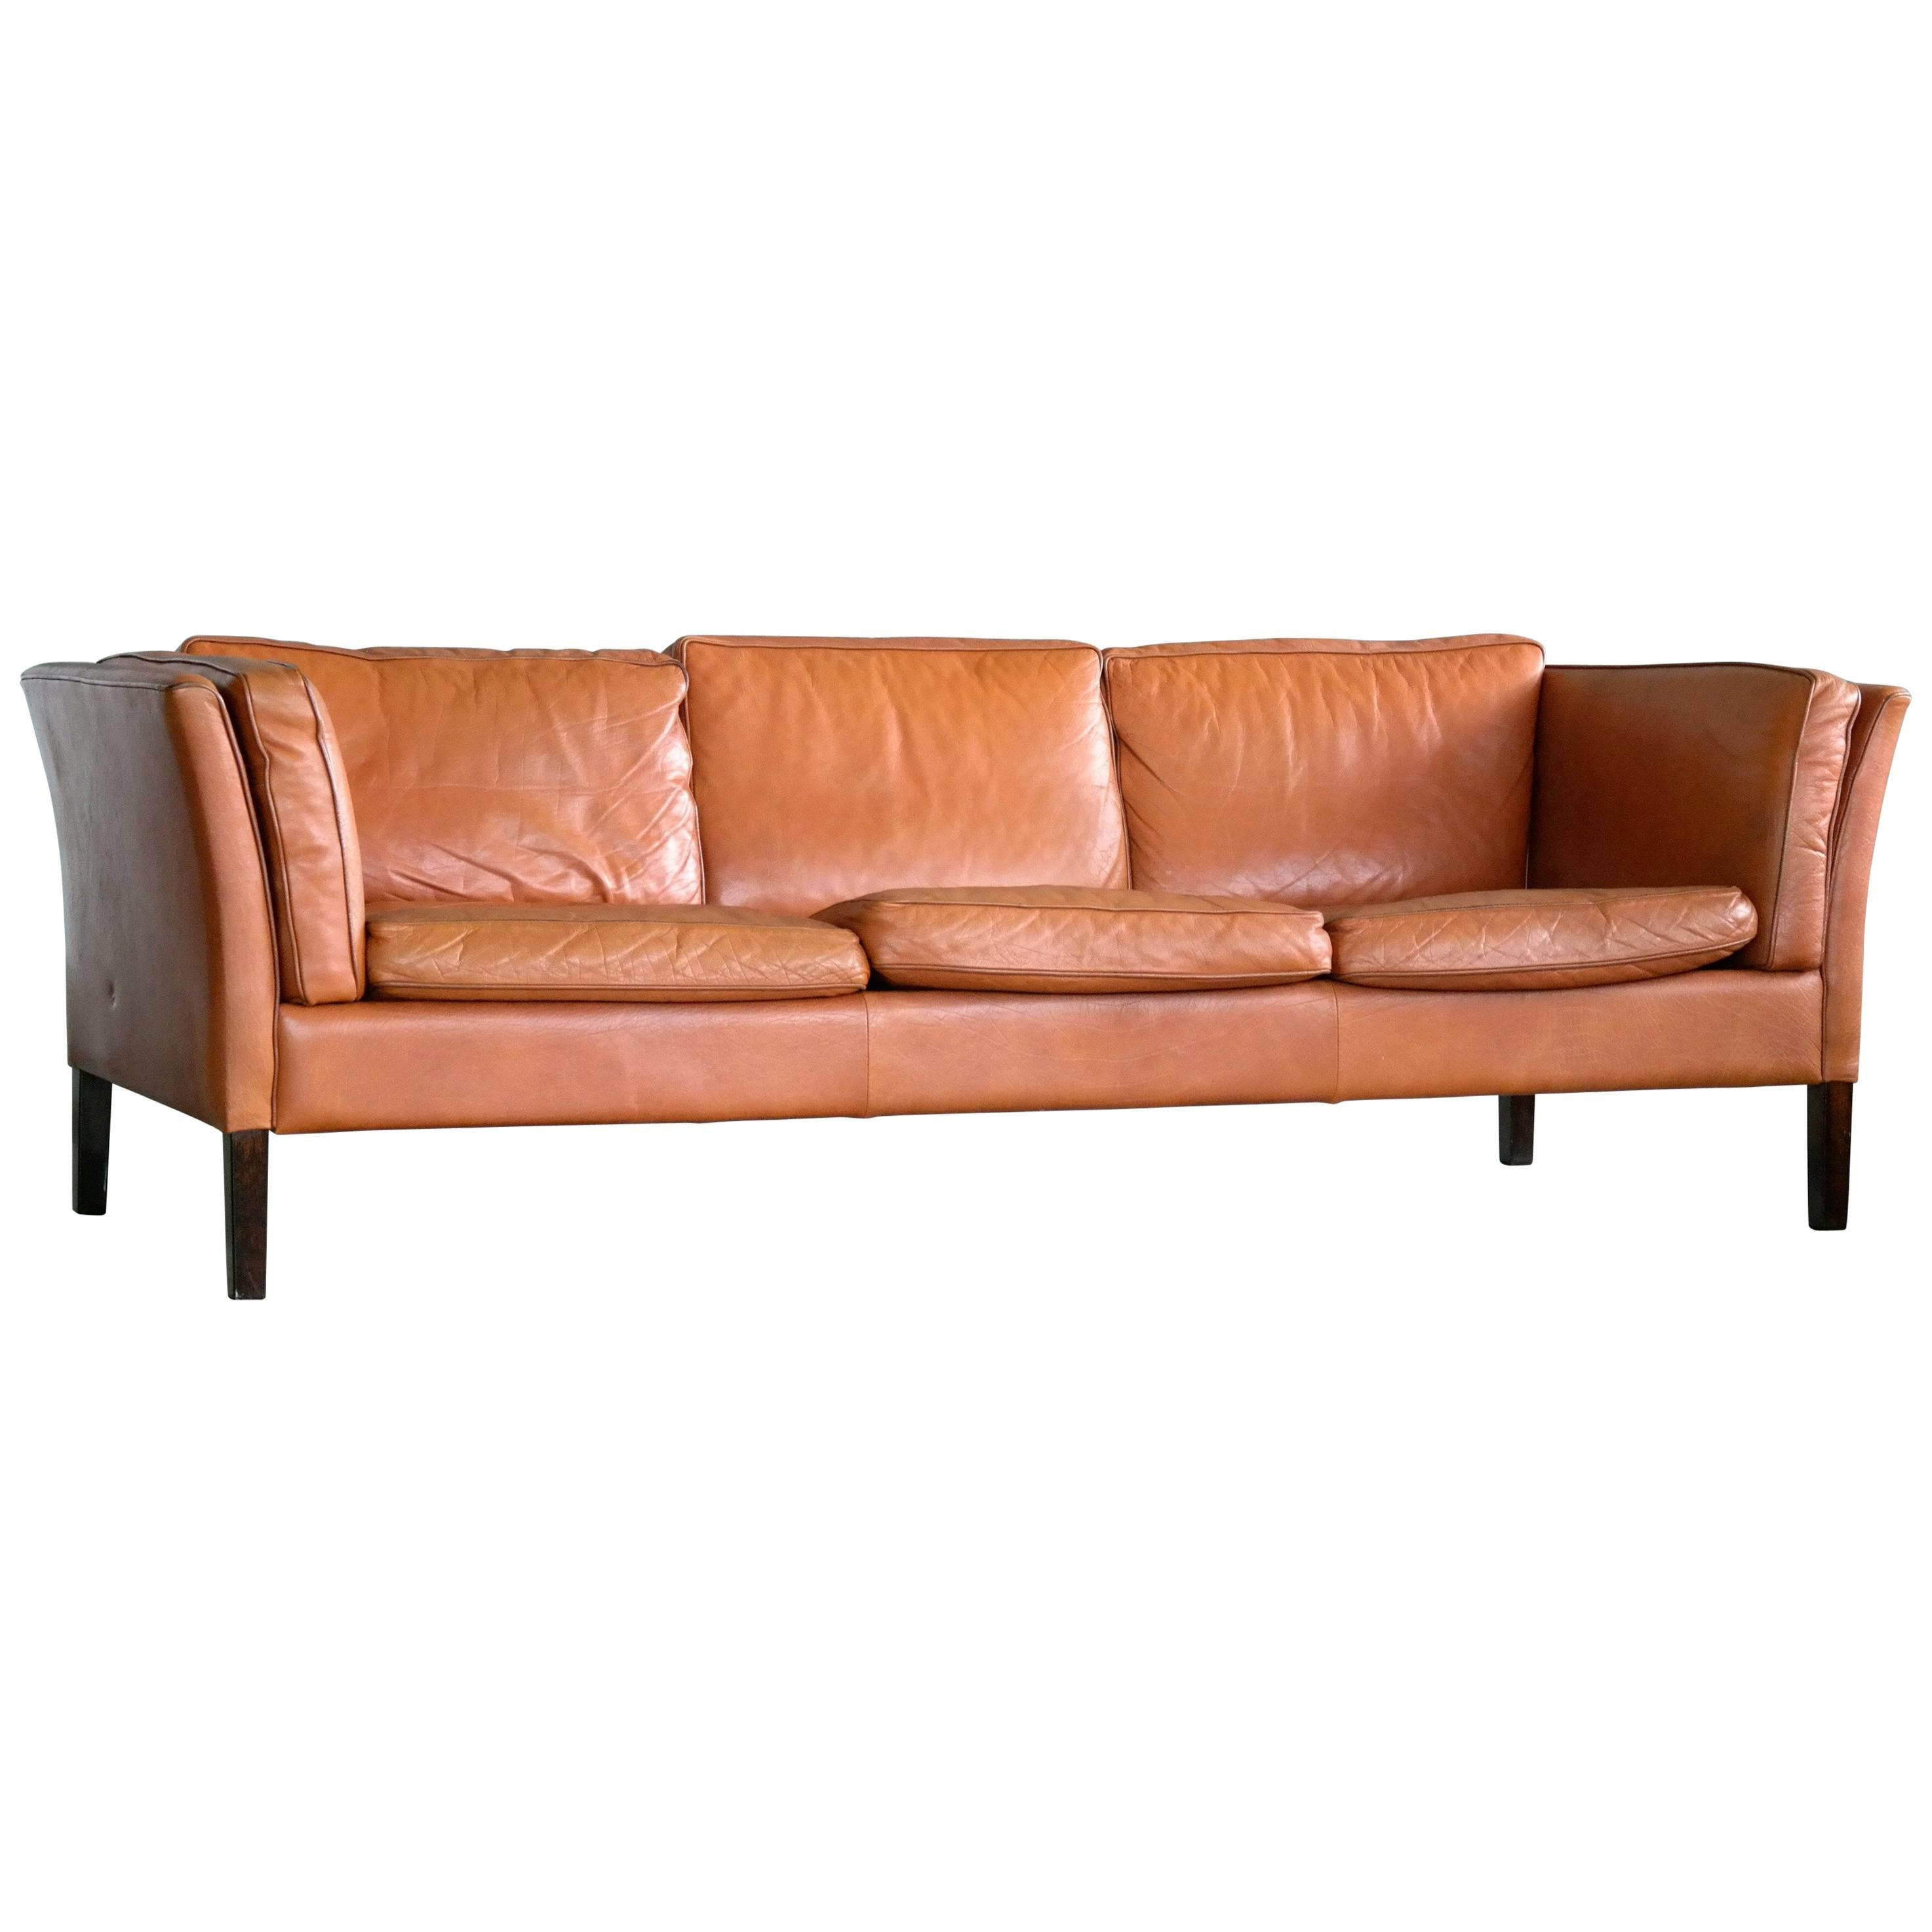 Borge Mogensen Style Danish Three Seat Leather Sofa In Patinated Cognac  Leather For Sale